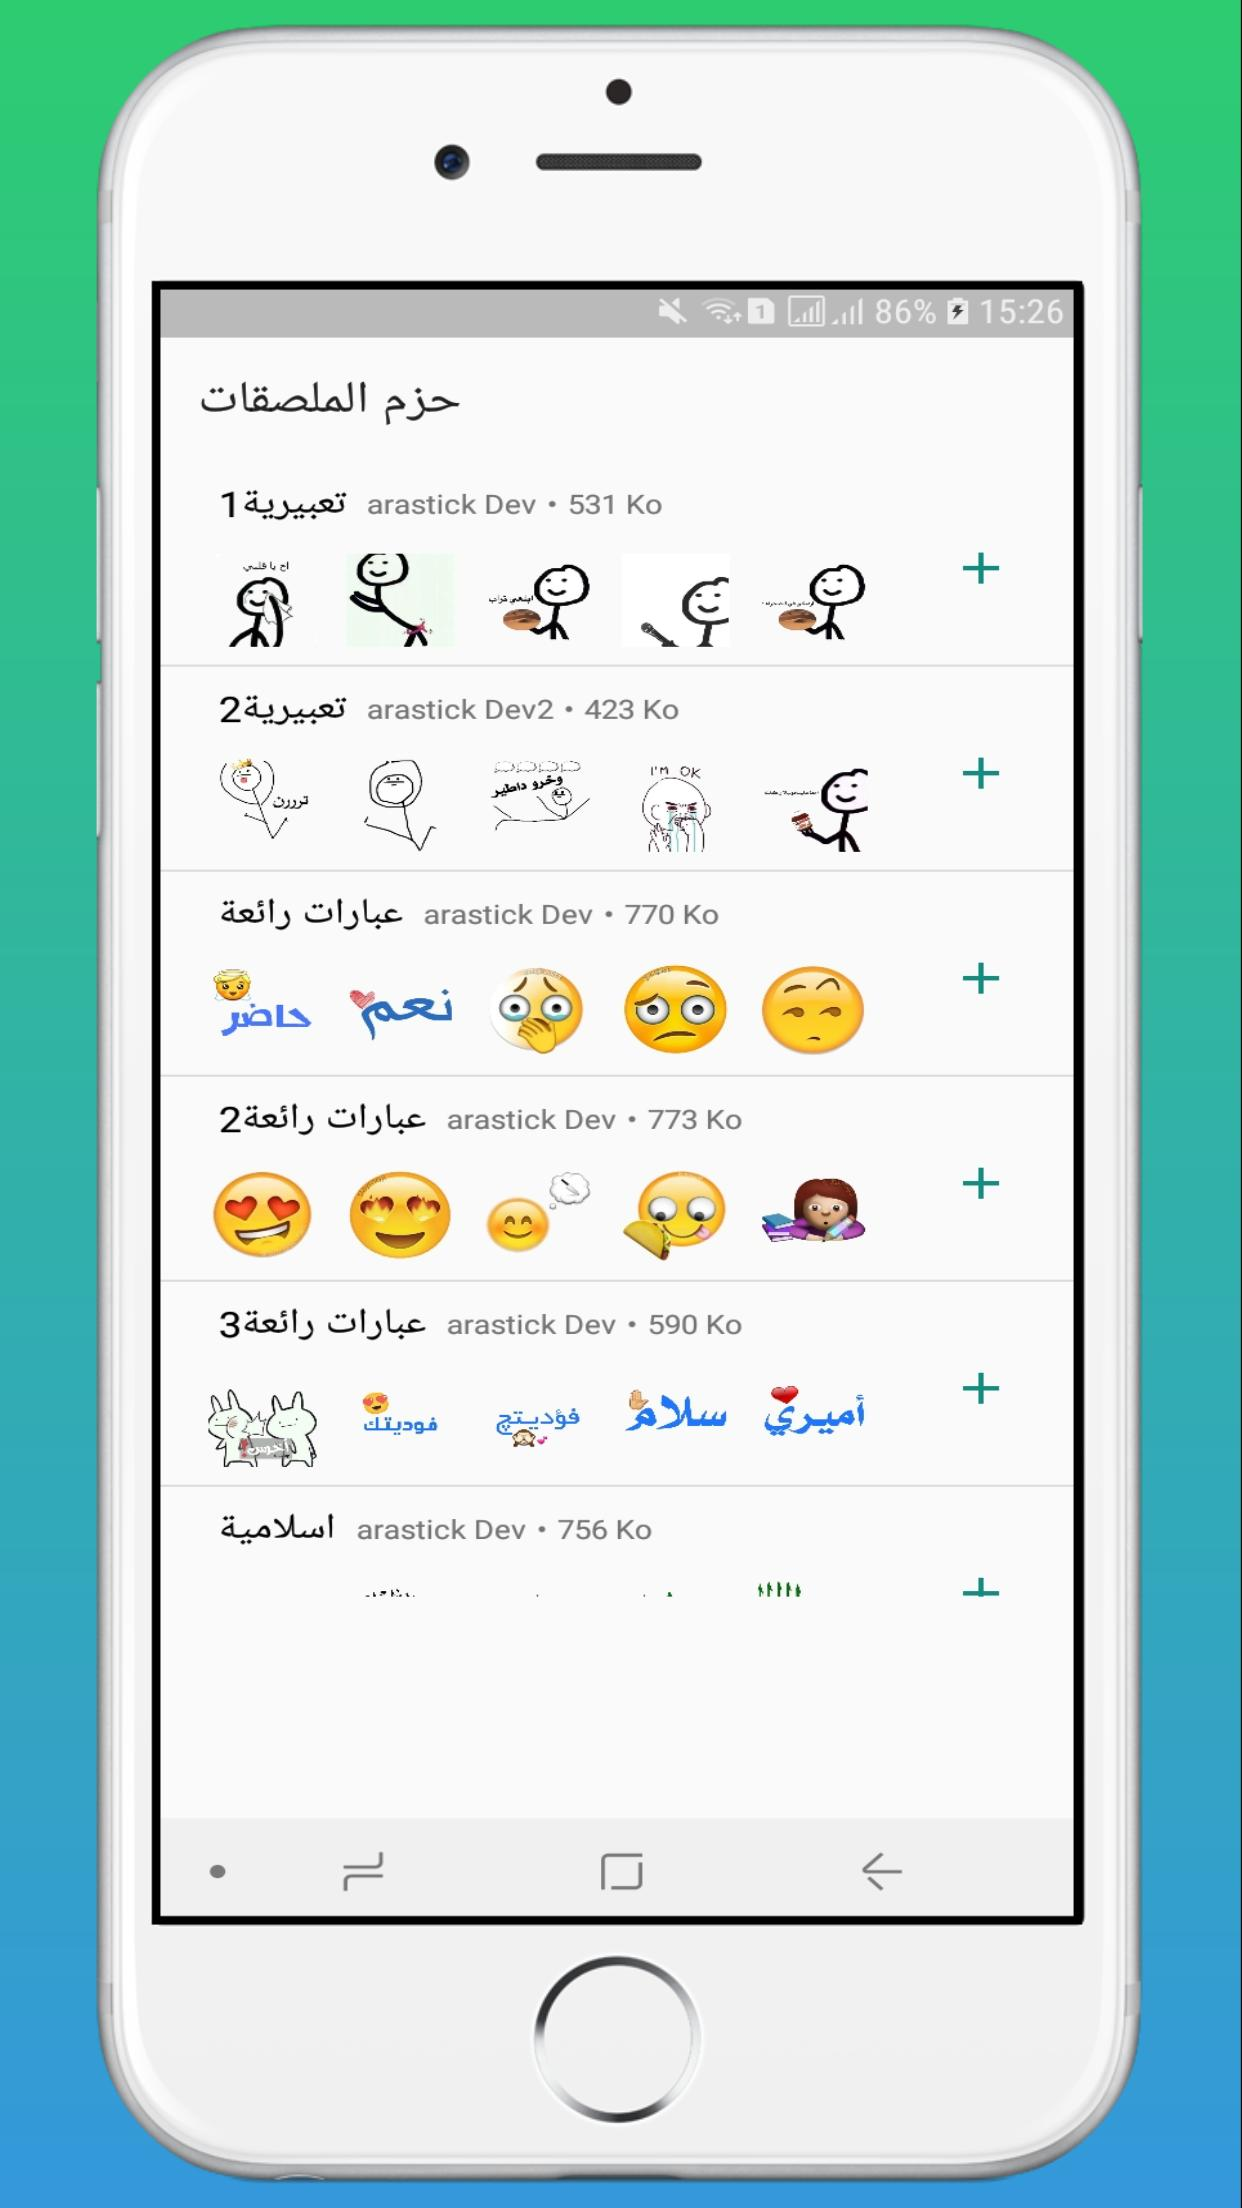 Arabic Stickers for Whatsapp (2019) for Android - APK Download